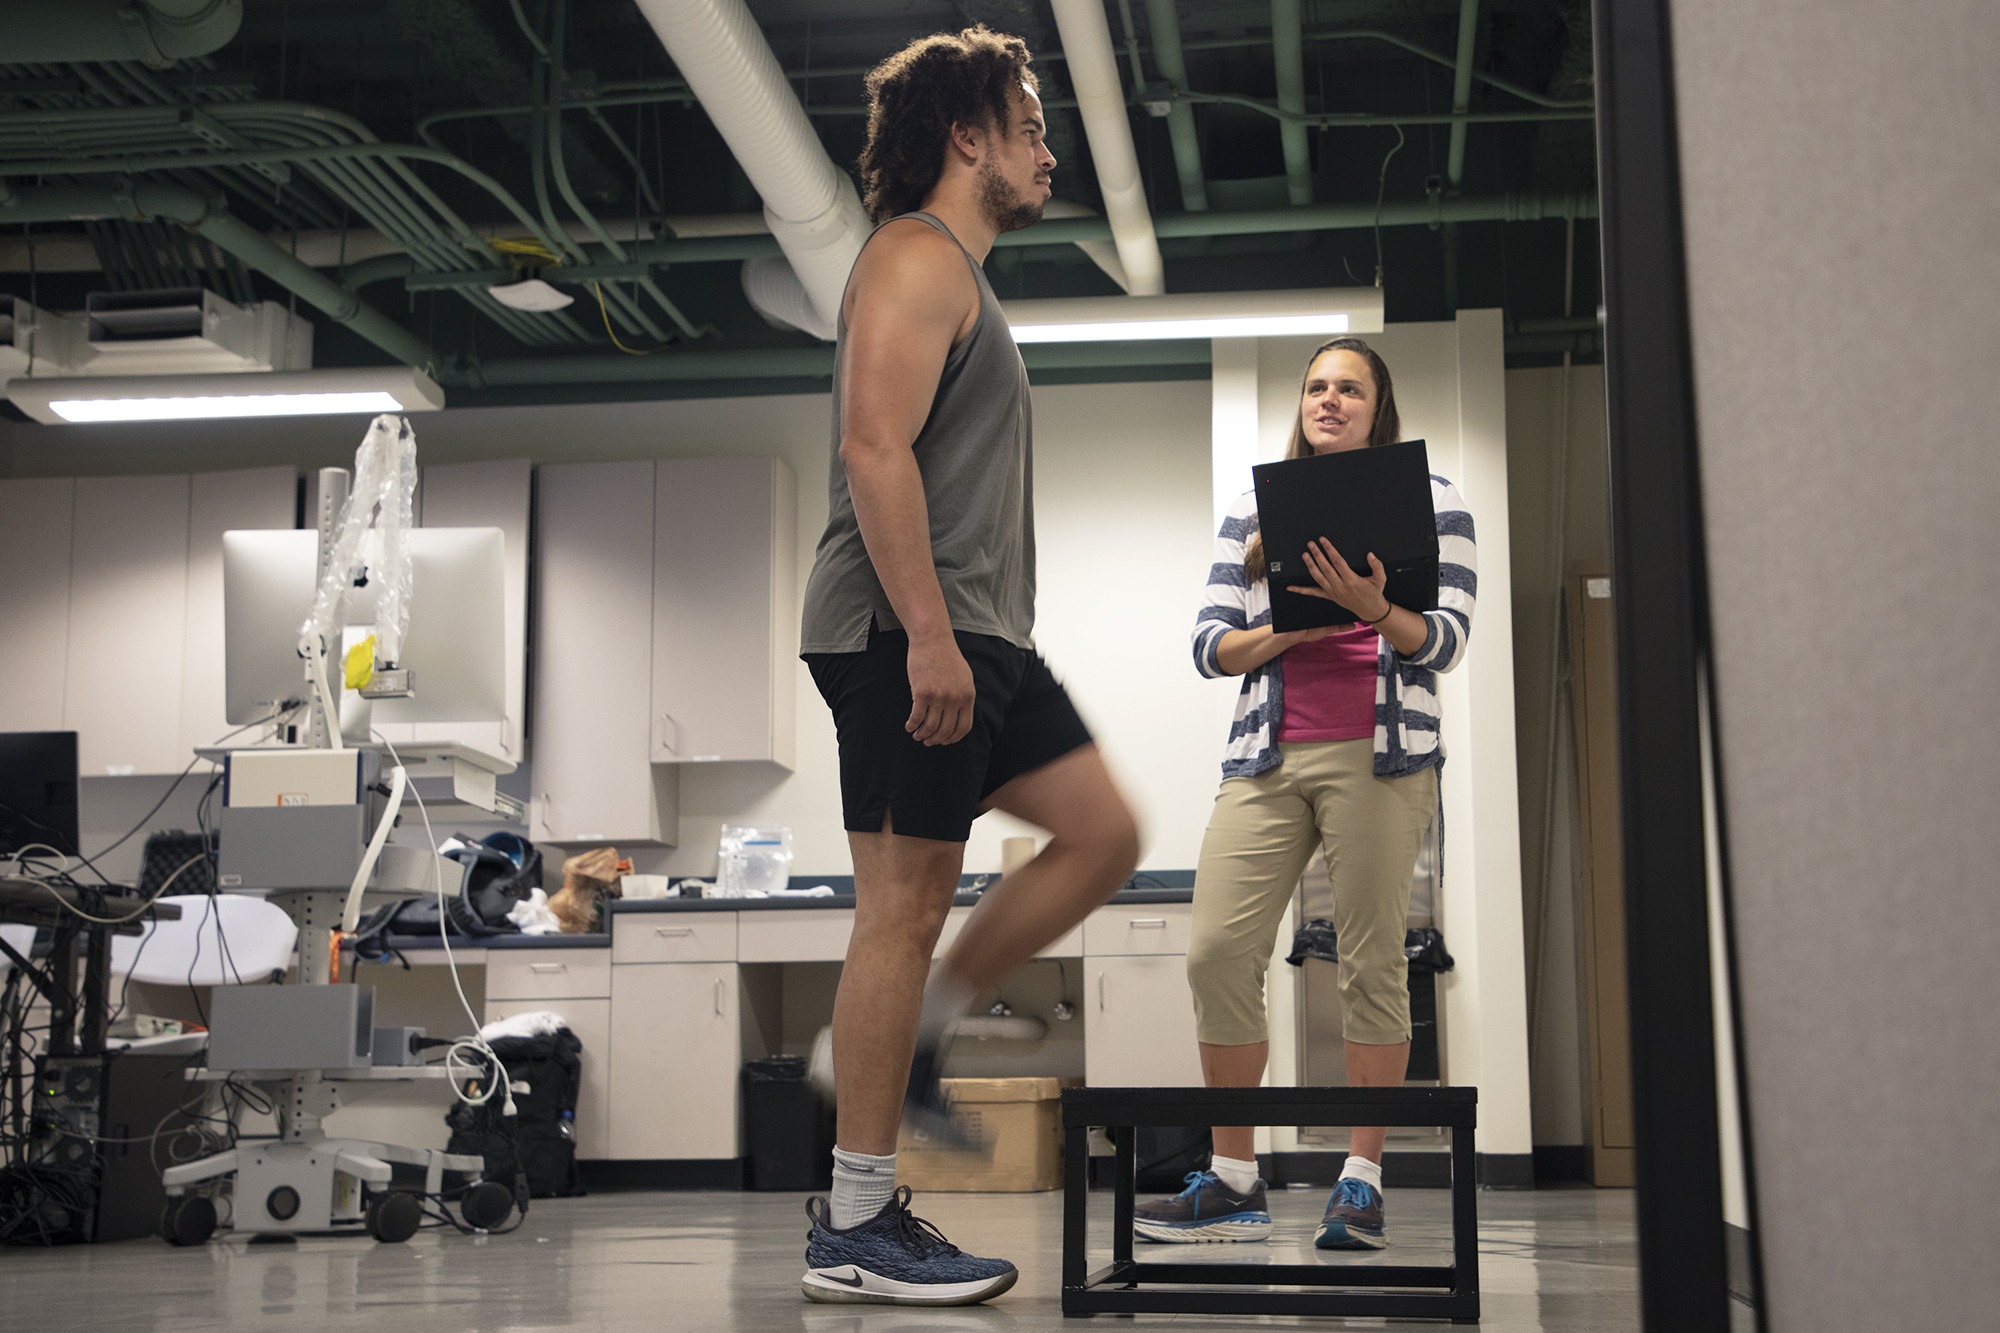 grad student Julianna Prim (right) monitors the heart rate of Ryan Brooks, as he steps up and down on a platform